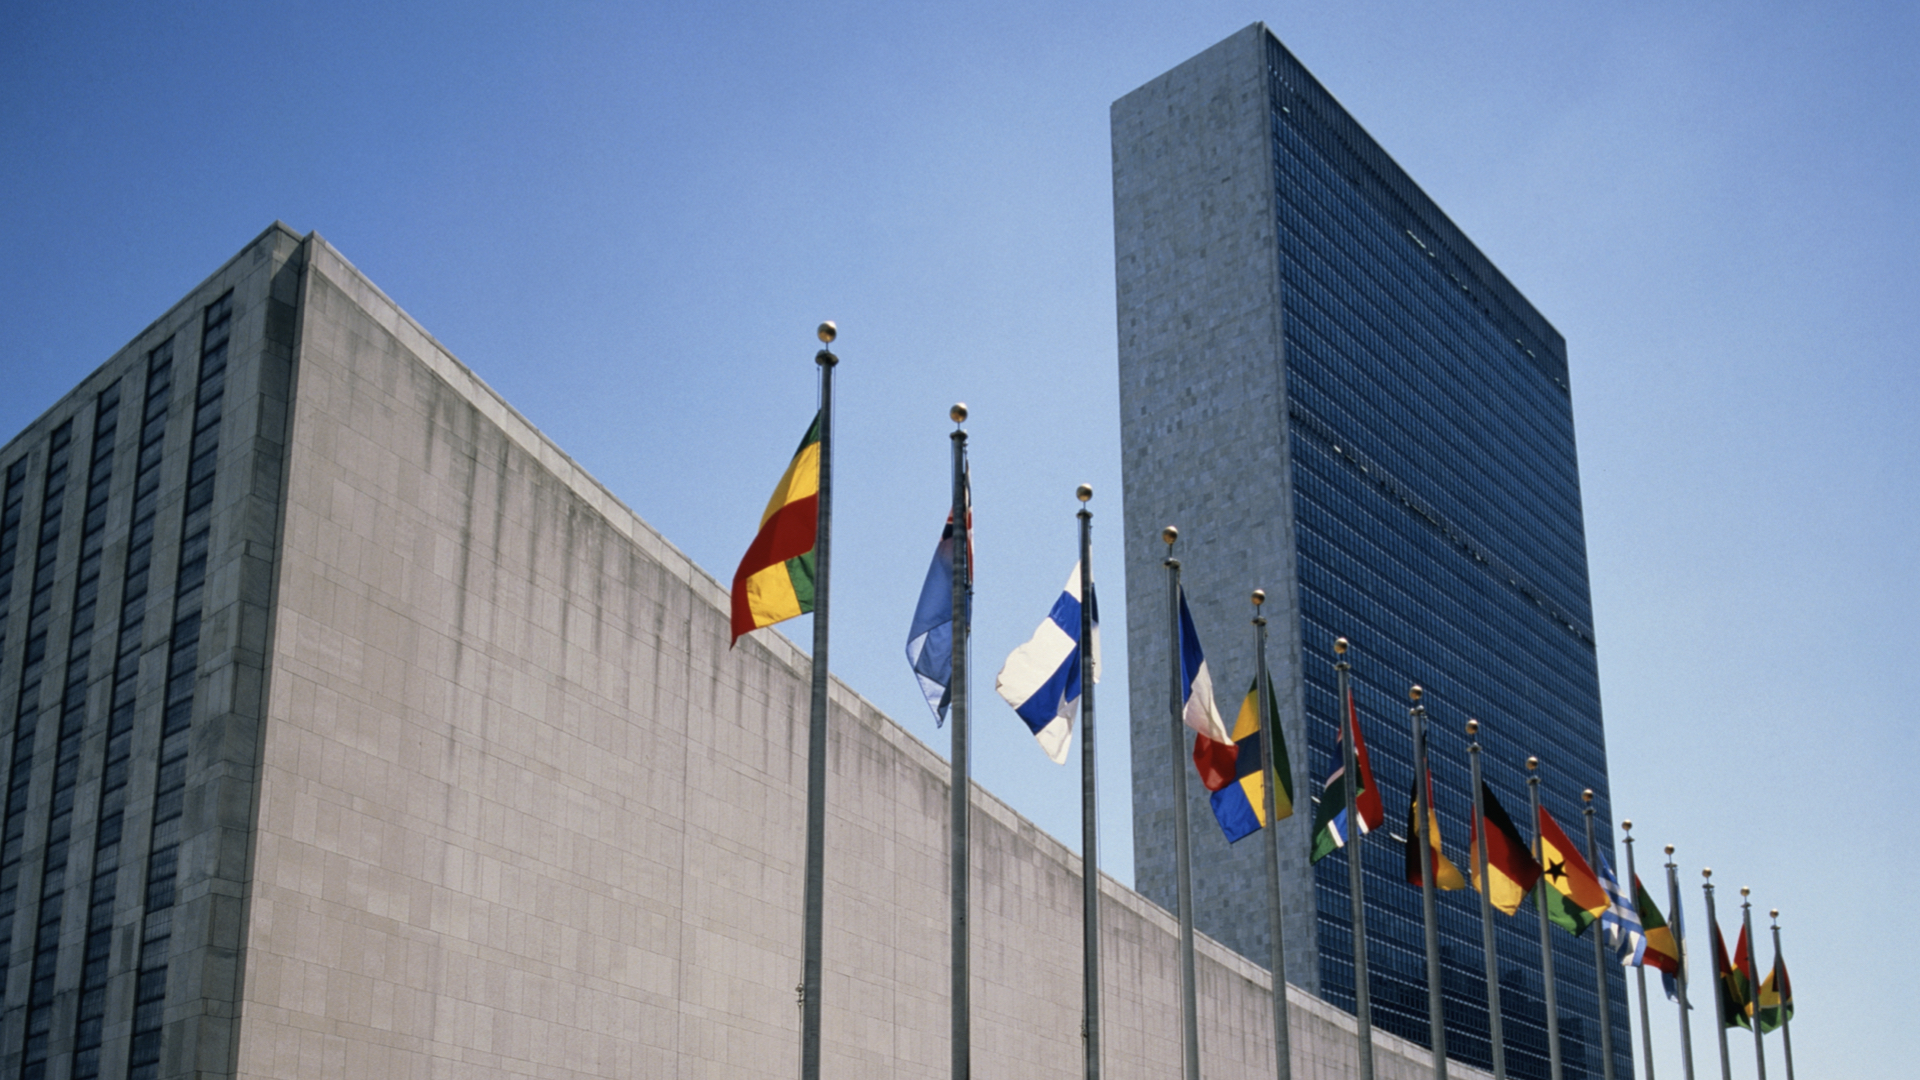 Image of United Nations Building